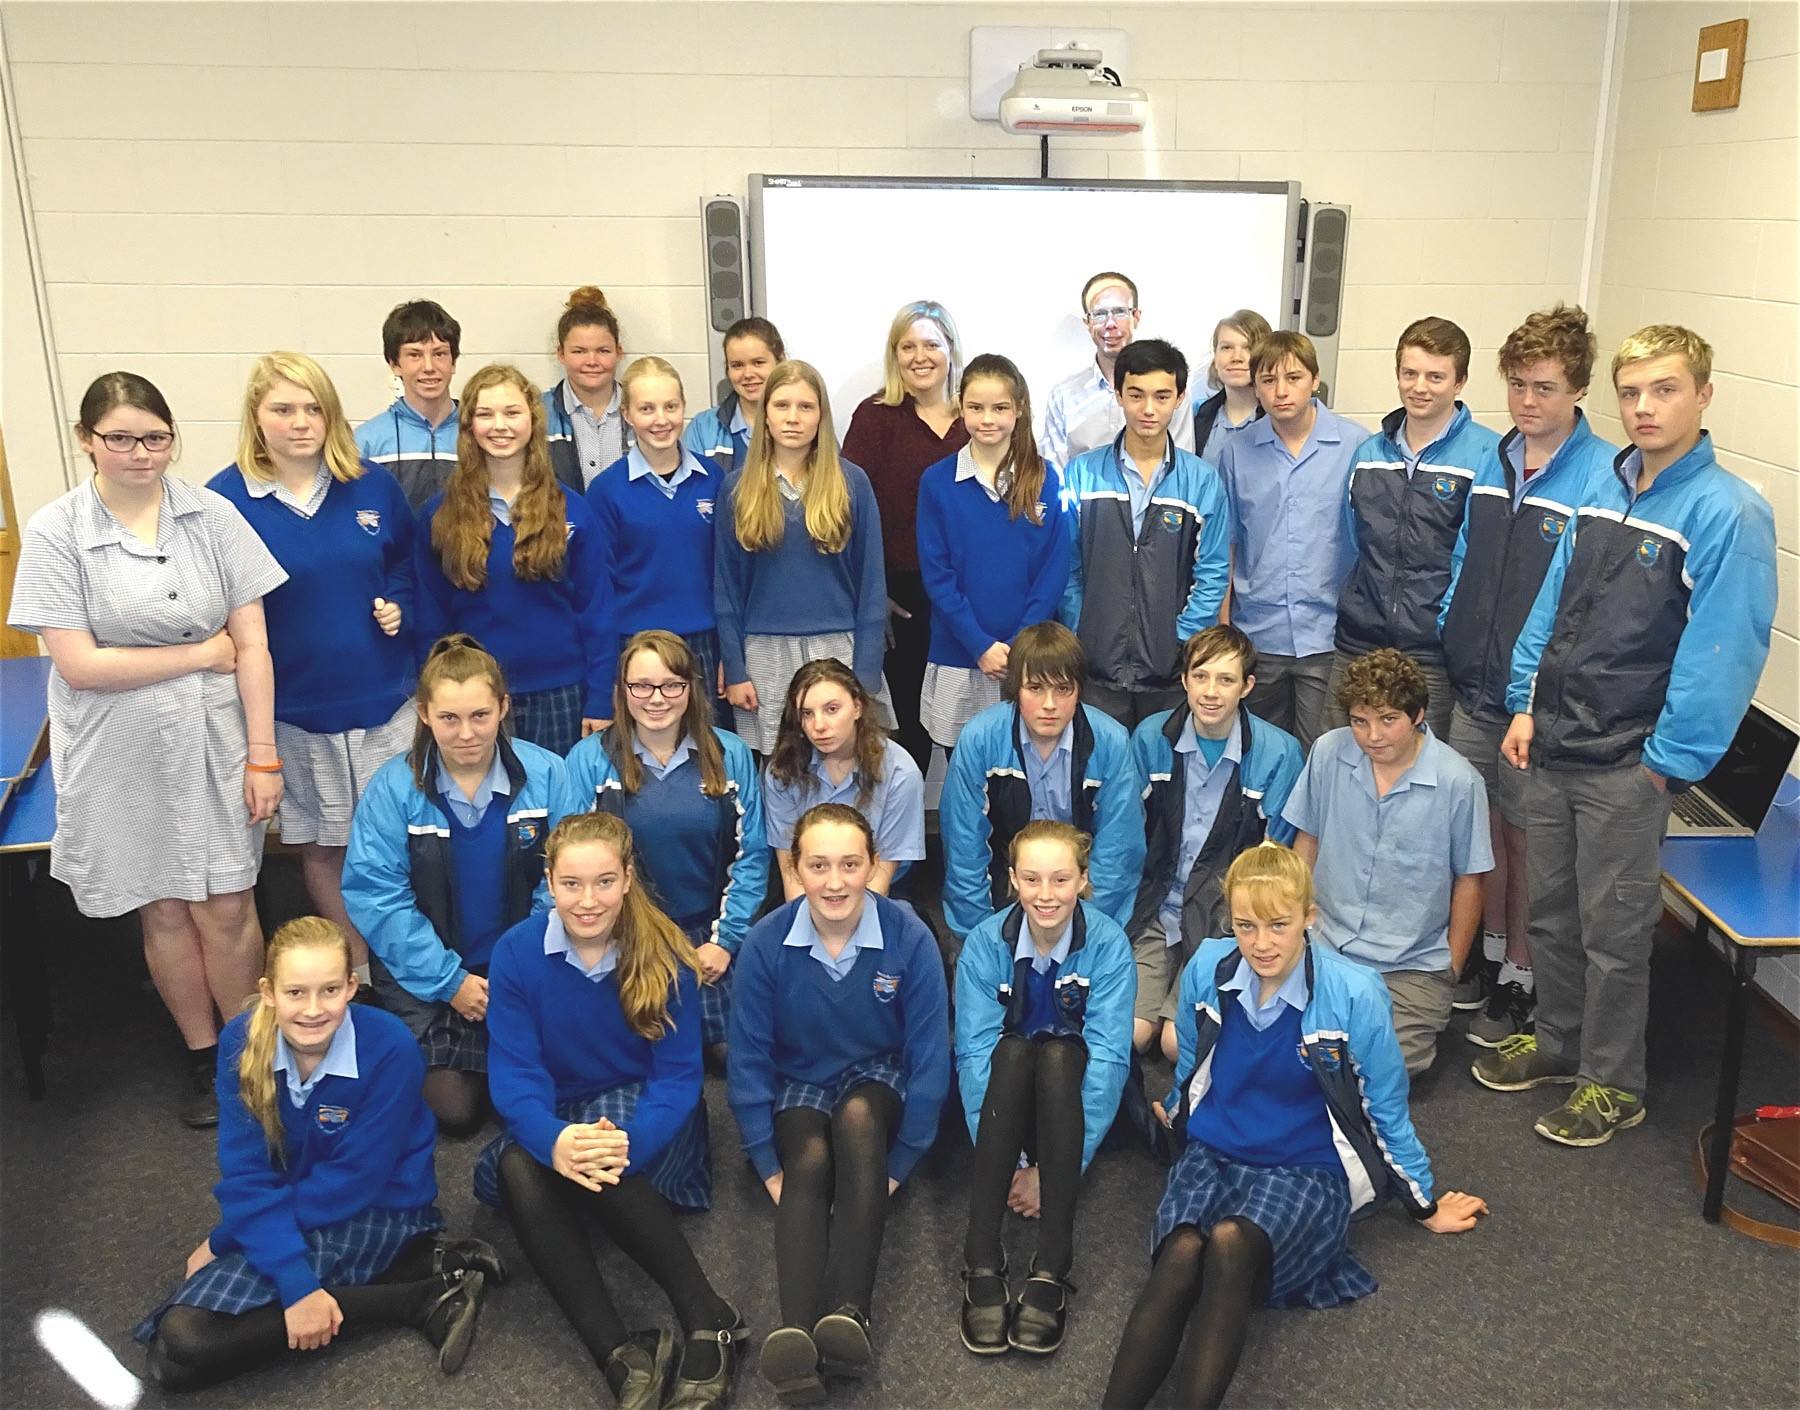 A class of high school students from Exeter High School in Tasmania